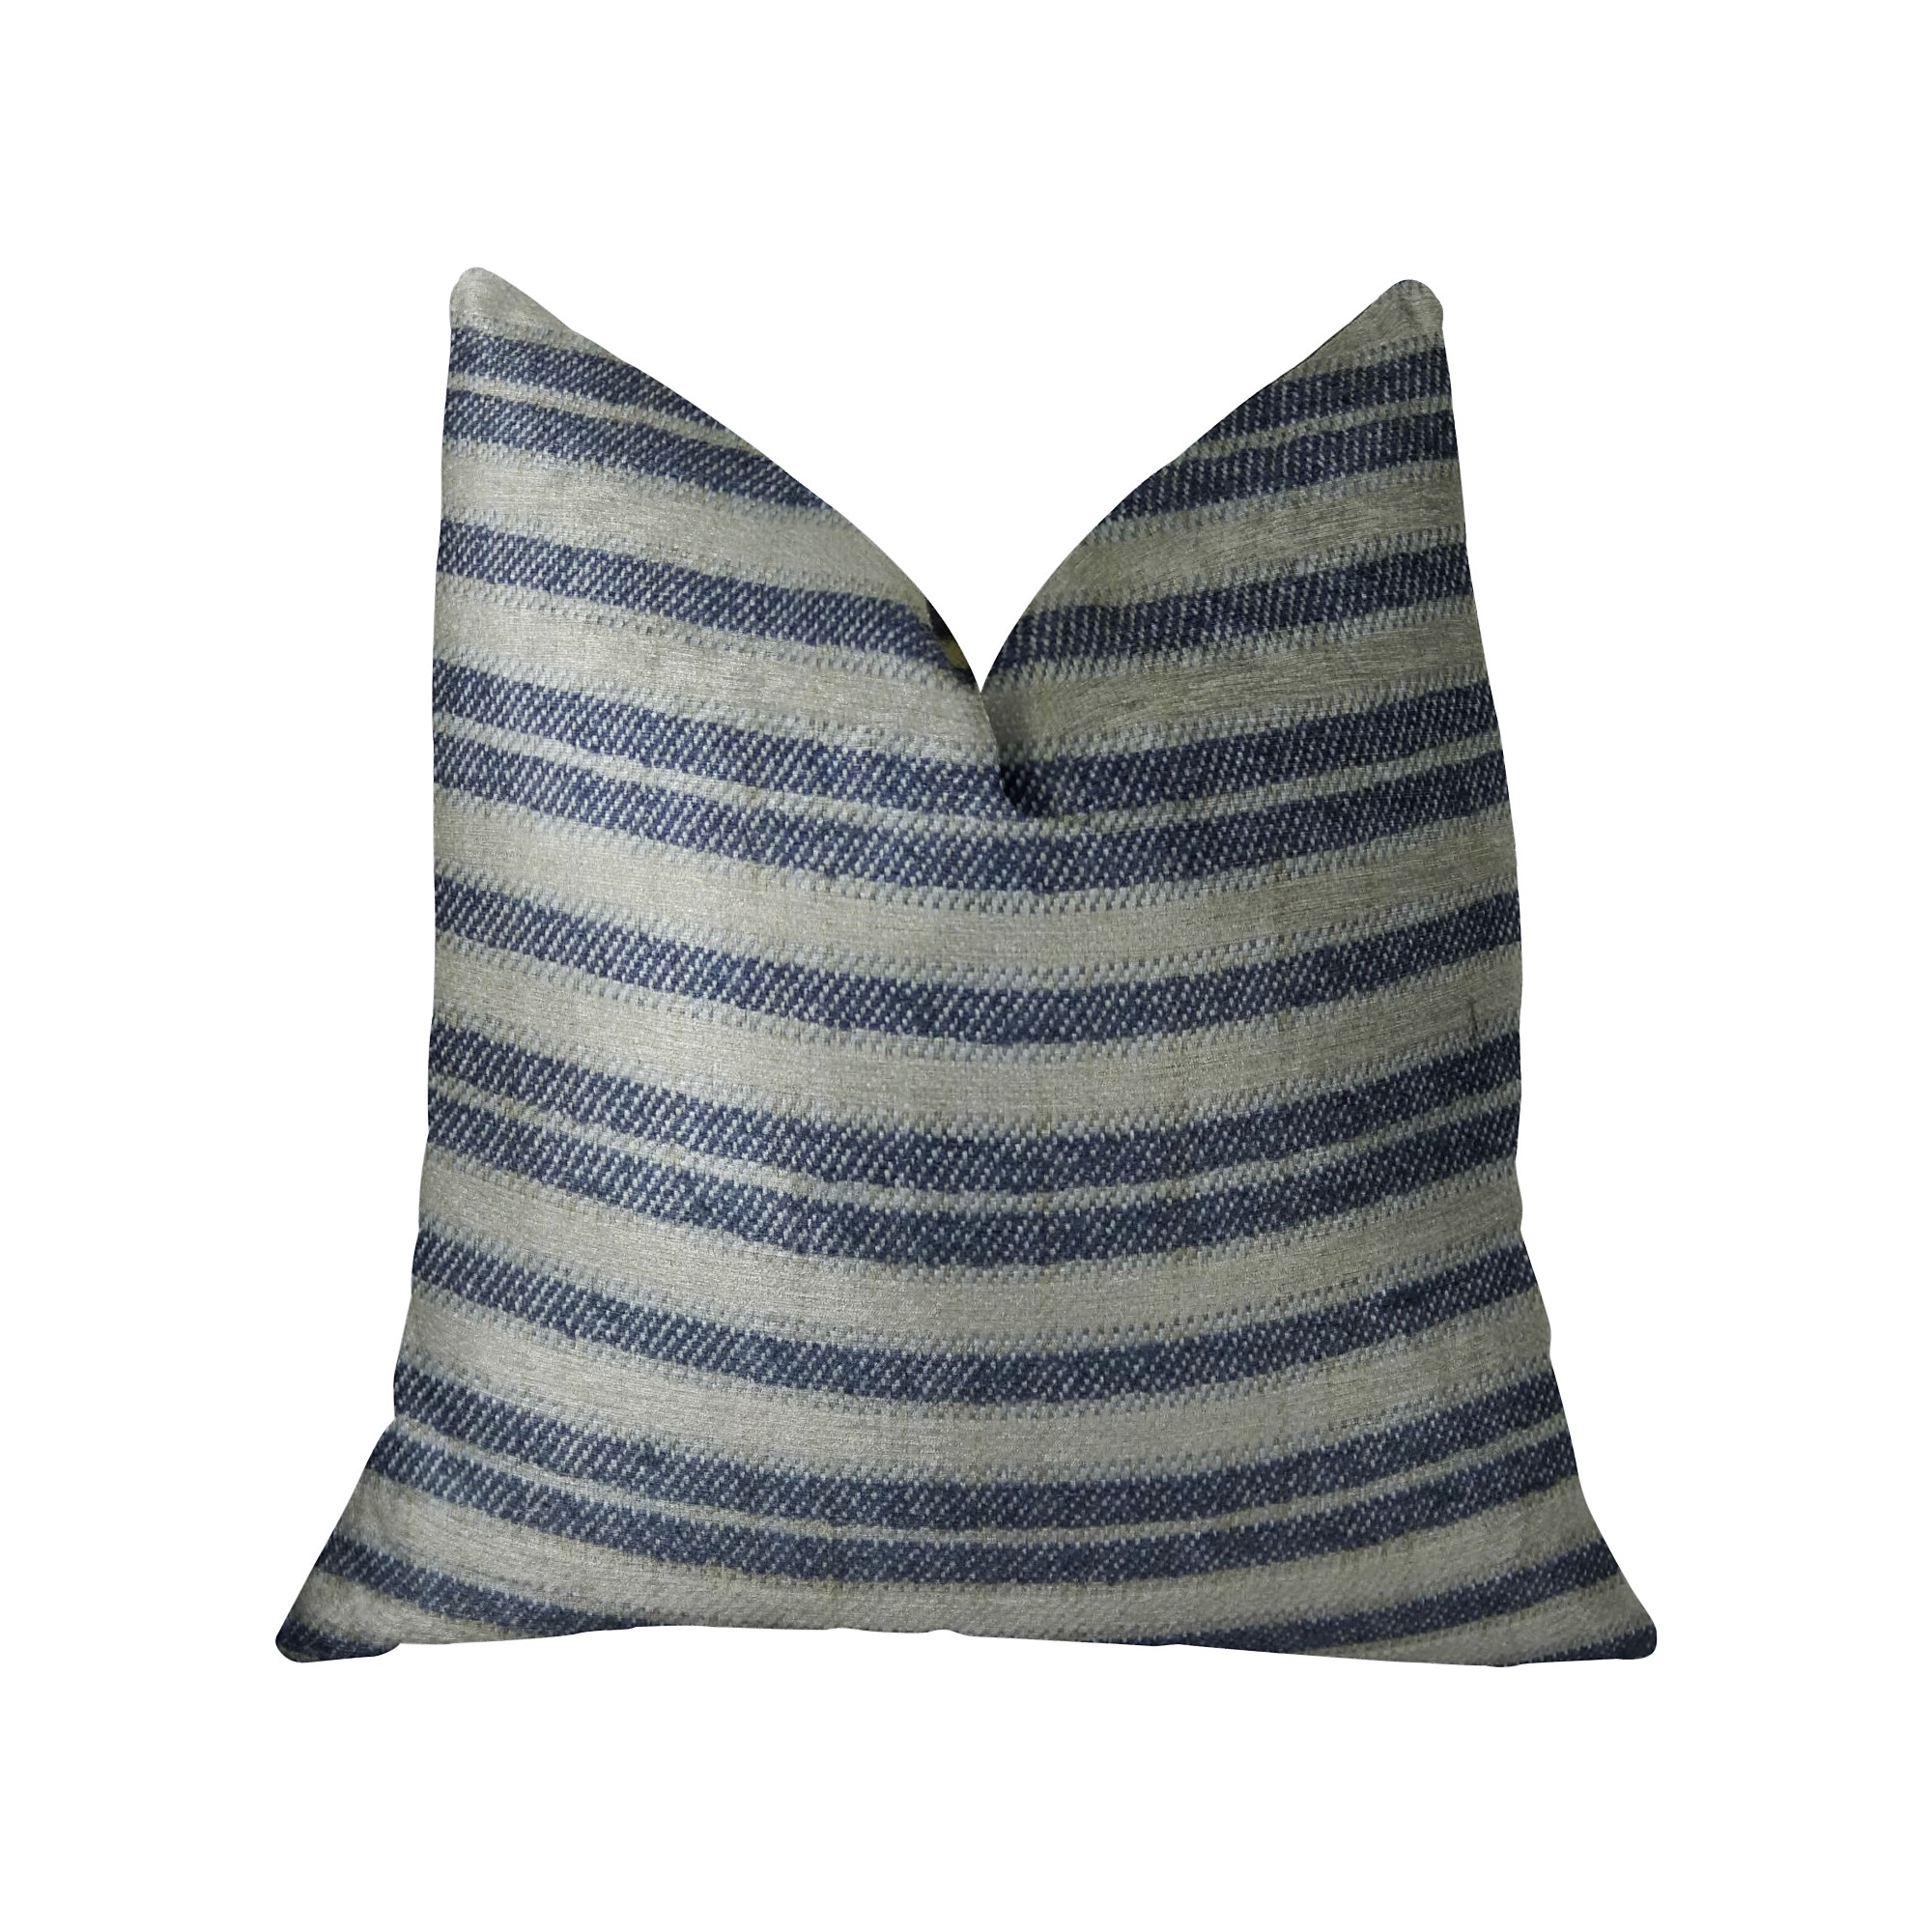 Plutus Stone Manor Indigo Handmade Throw Pillow, Double Sided